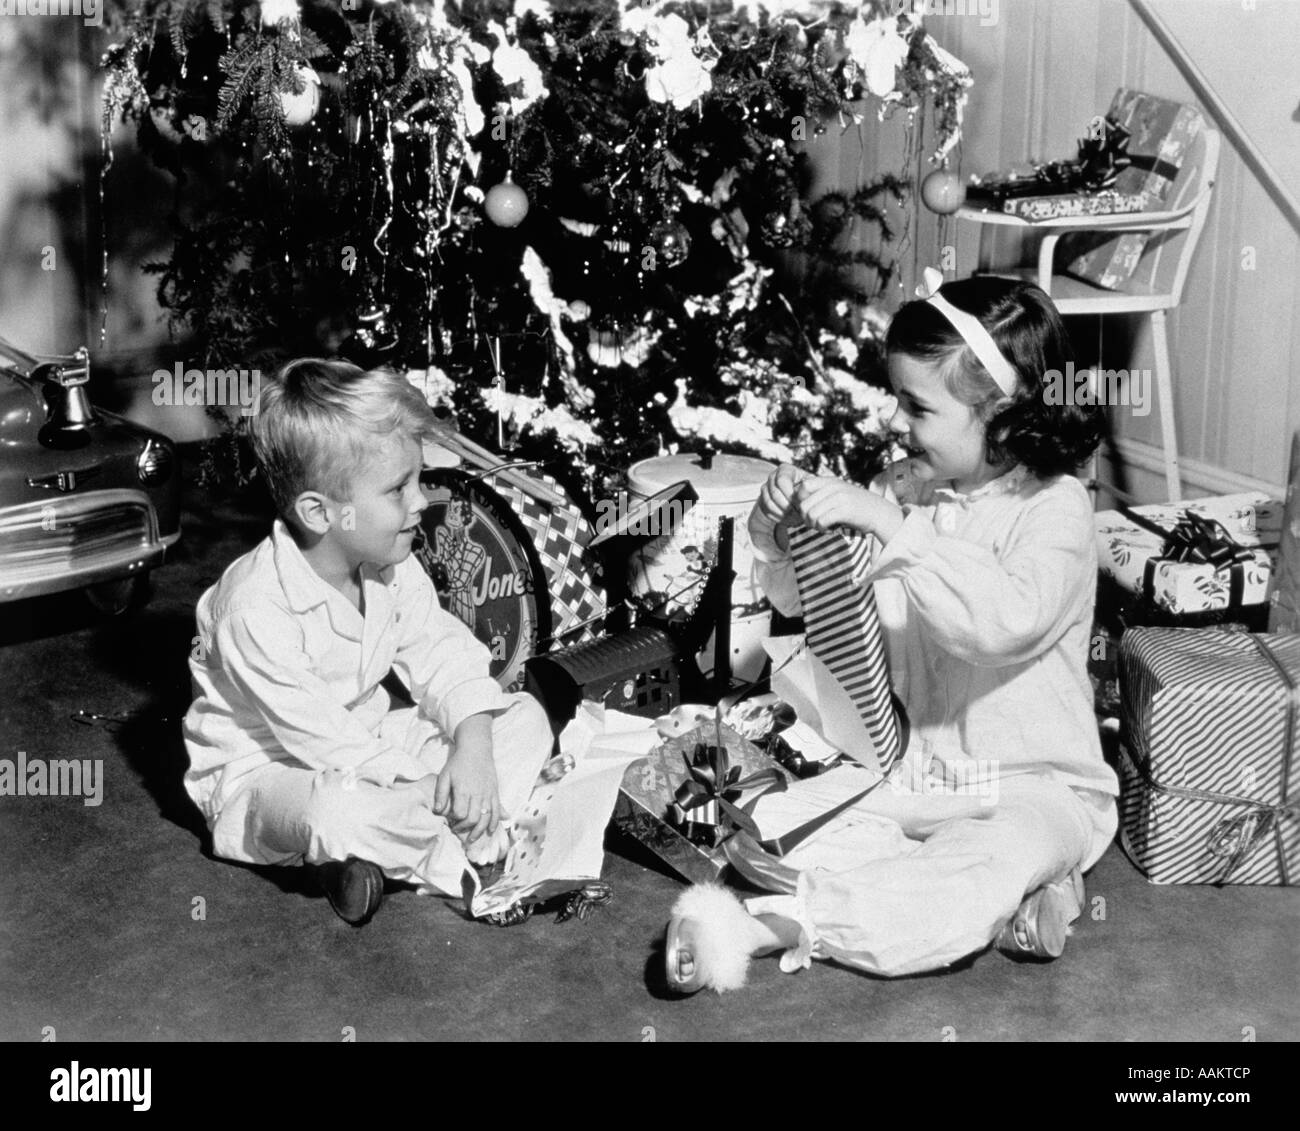 1950s christmas children stockfotos 1950s christmas children bilder alamy. Black Bedroom Furniture Sets. Home Design Ideas